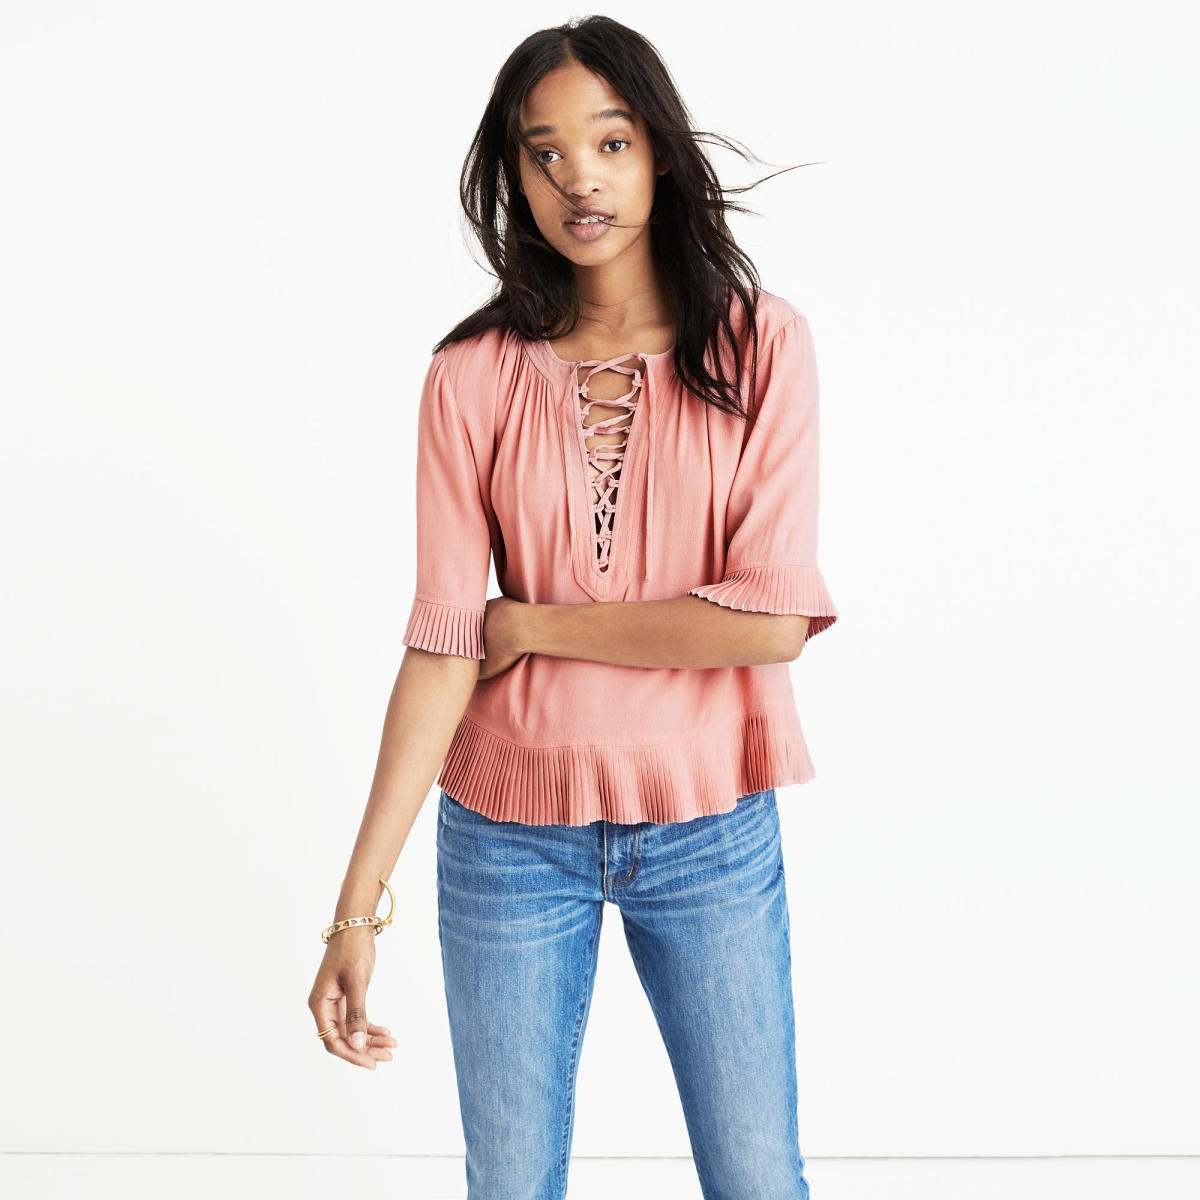 Madewell Sunpleat Lace-Up Top, $95, available at Madewell.